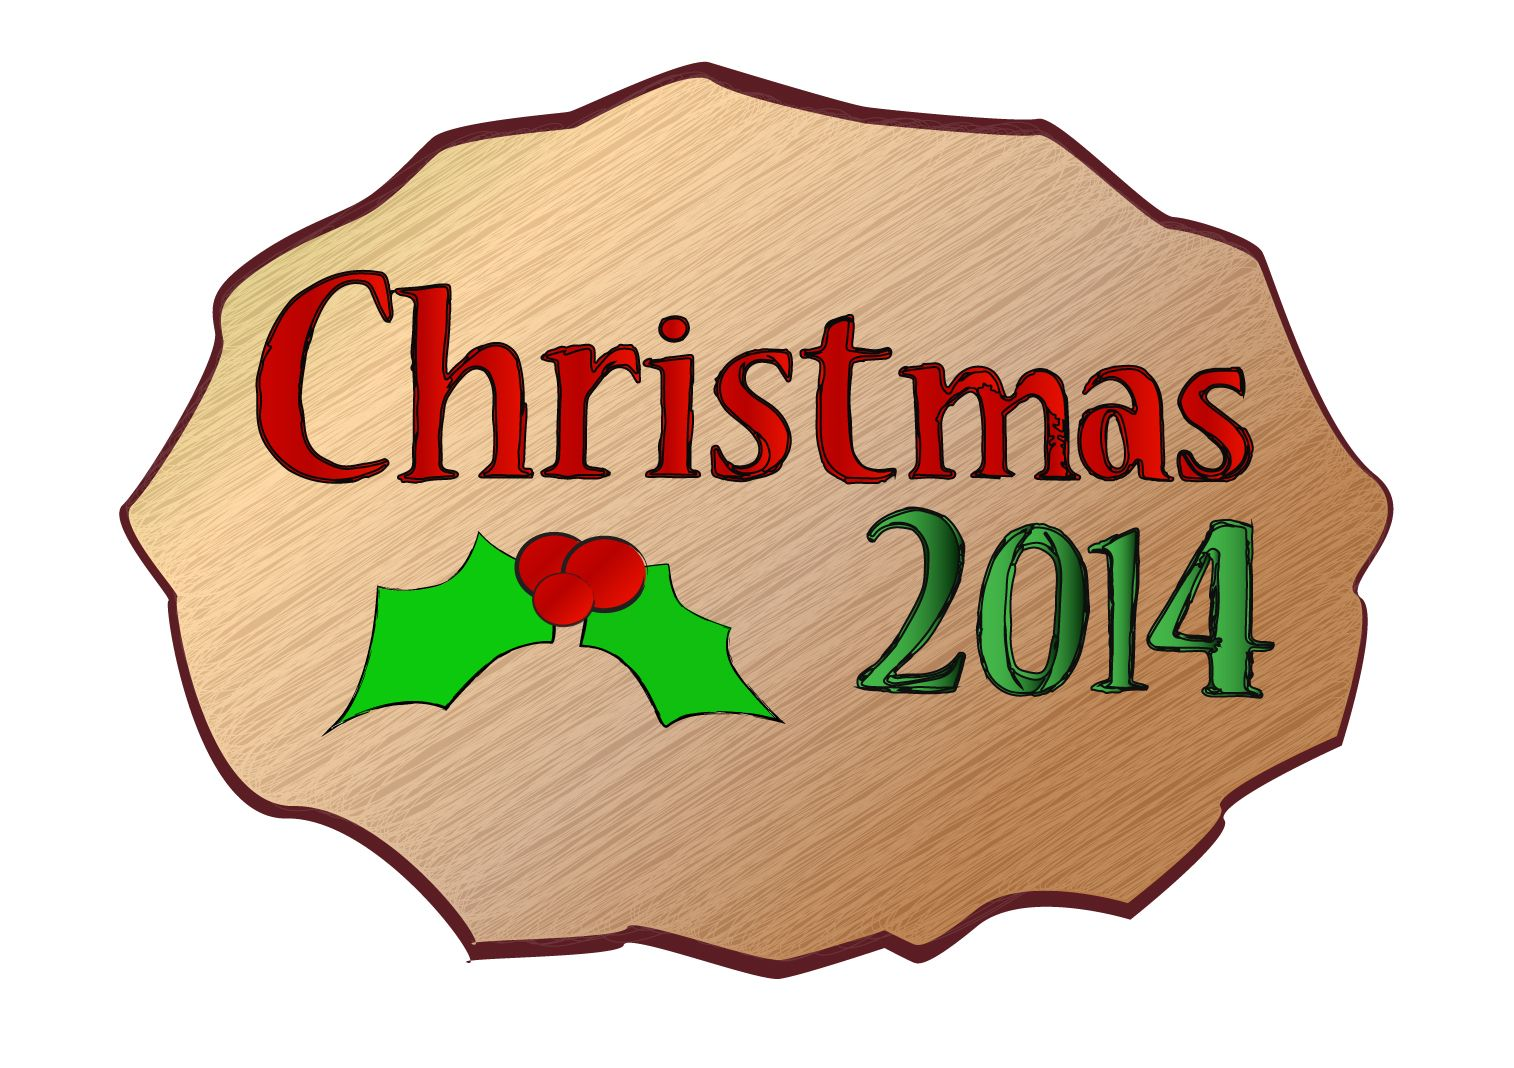 My official logo for Christmas 2014. More great logos like this can be found via my website, www.bobbygaines.net